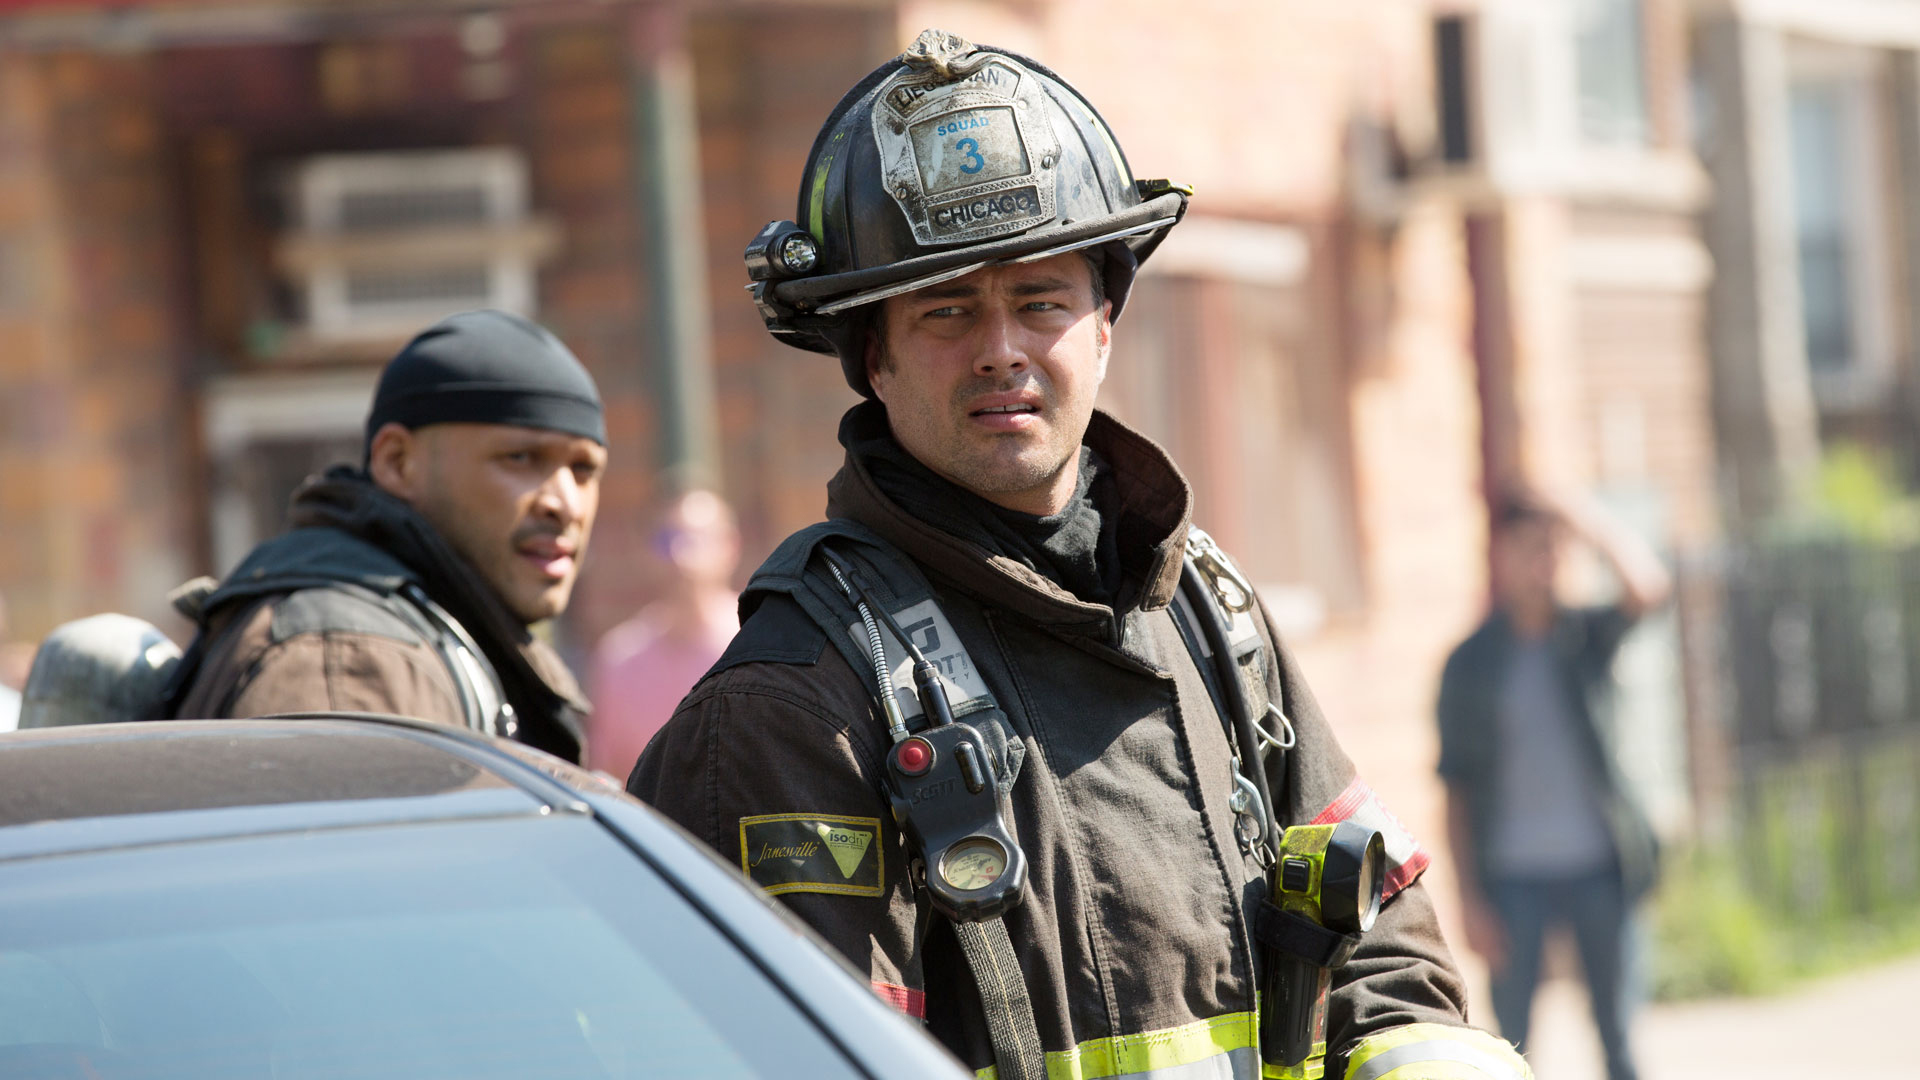 Forget summer, we have our NBC fall TV premiere schedule right here